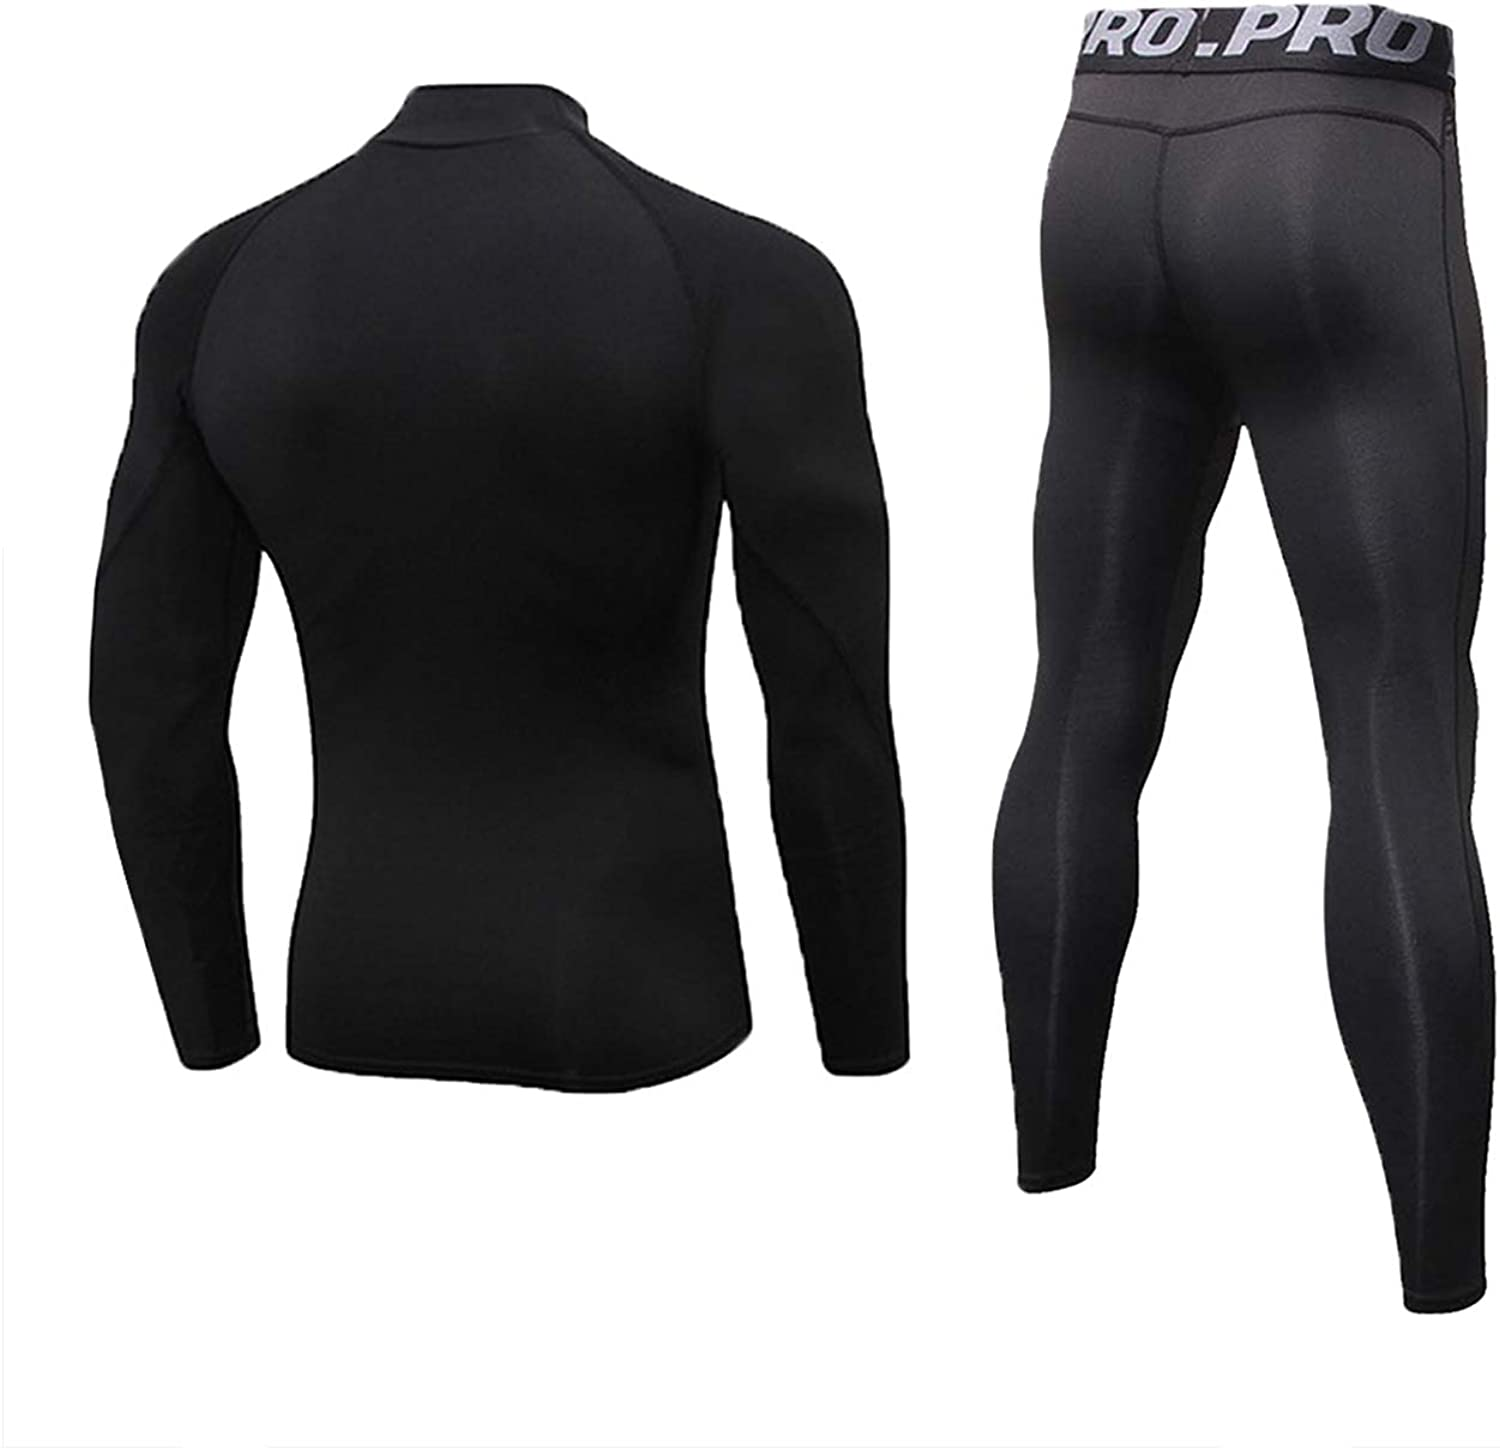 Mens Fitness Base Layer Stand Collar Tops and Long Johns 2 Pc Quick Dry Moisture Wicking Underwear for Cycling Running Gym